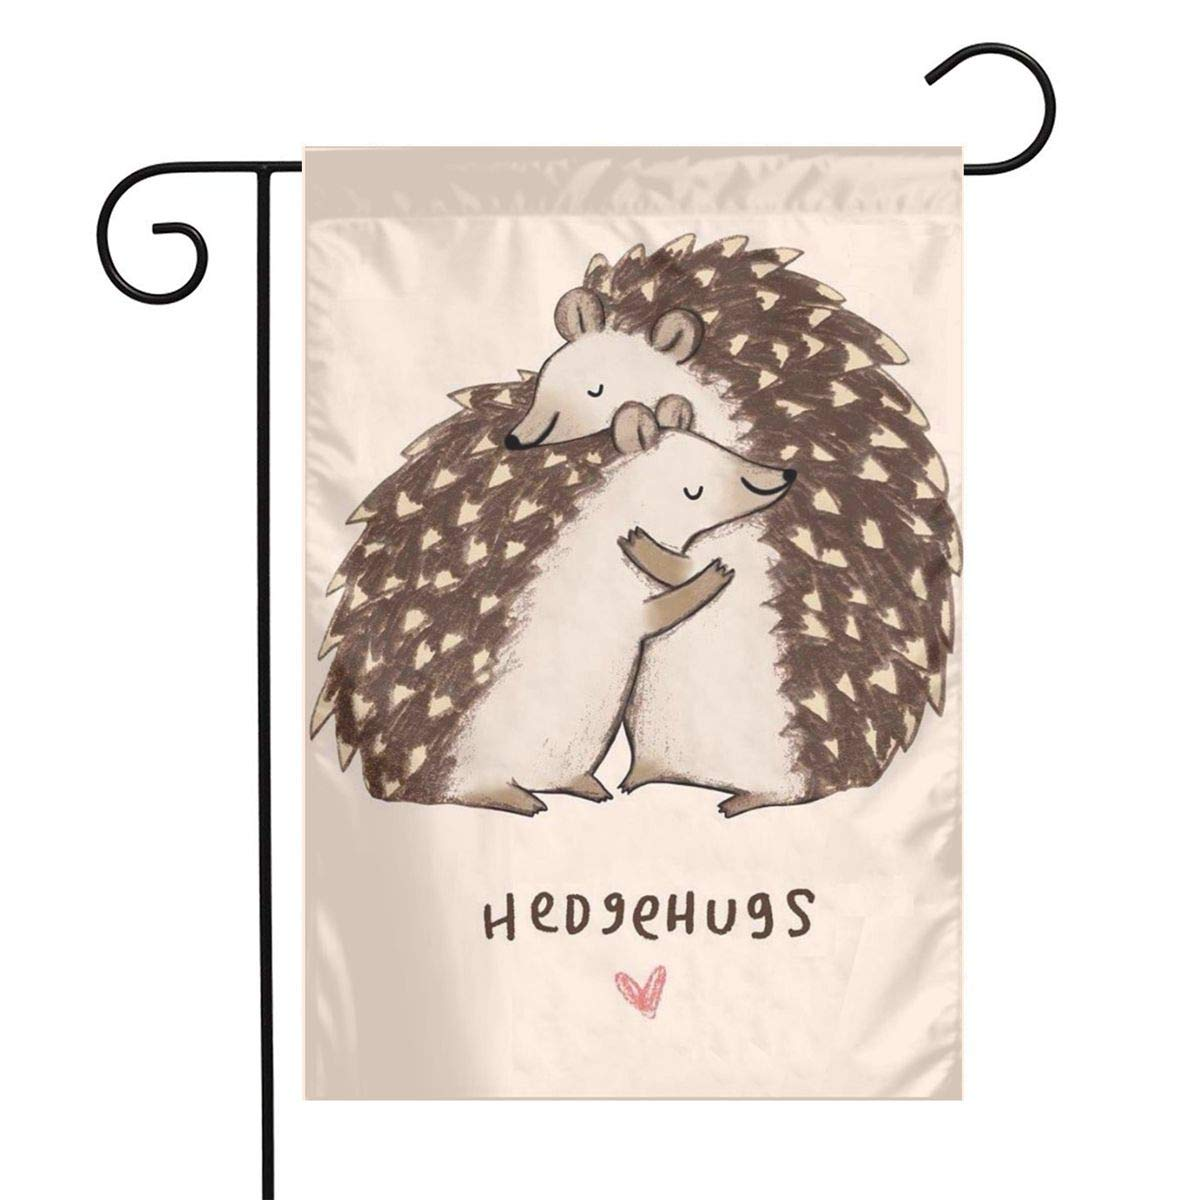 Hedgehog of Hug Garden Flags Home Indoor & Outdoor Holiday Decorations,Waterproof Polyester Yard Decorative for Game Family Party Banner